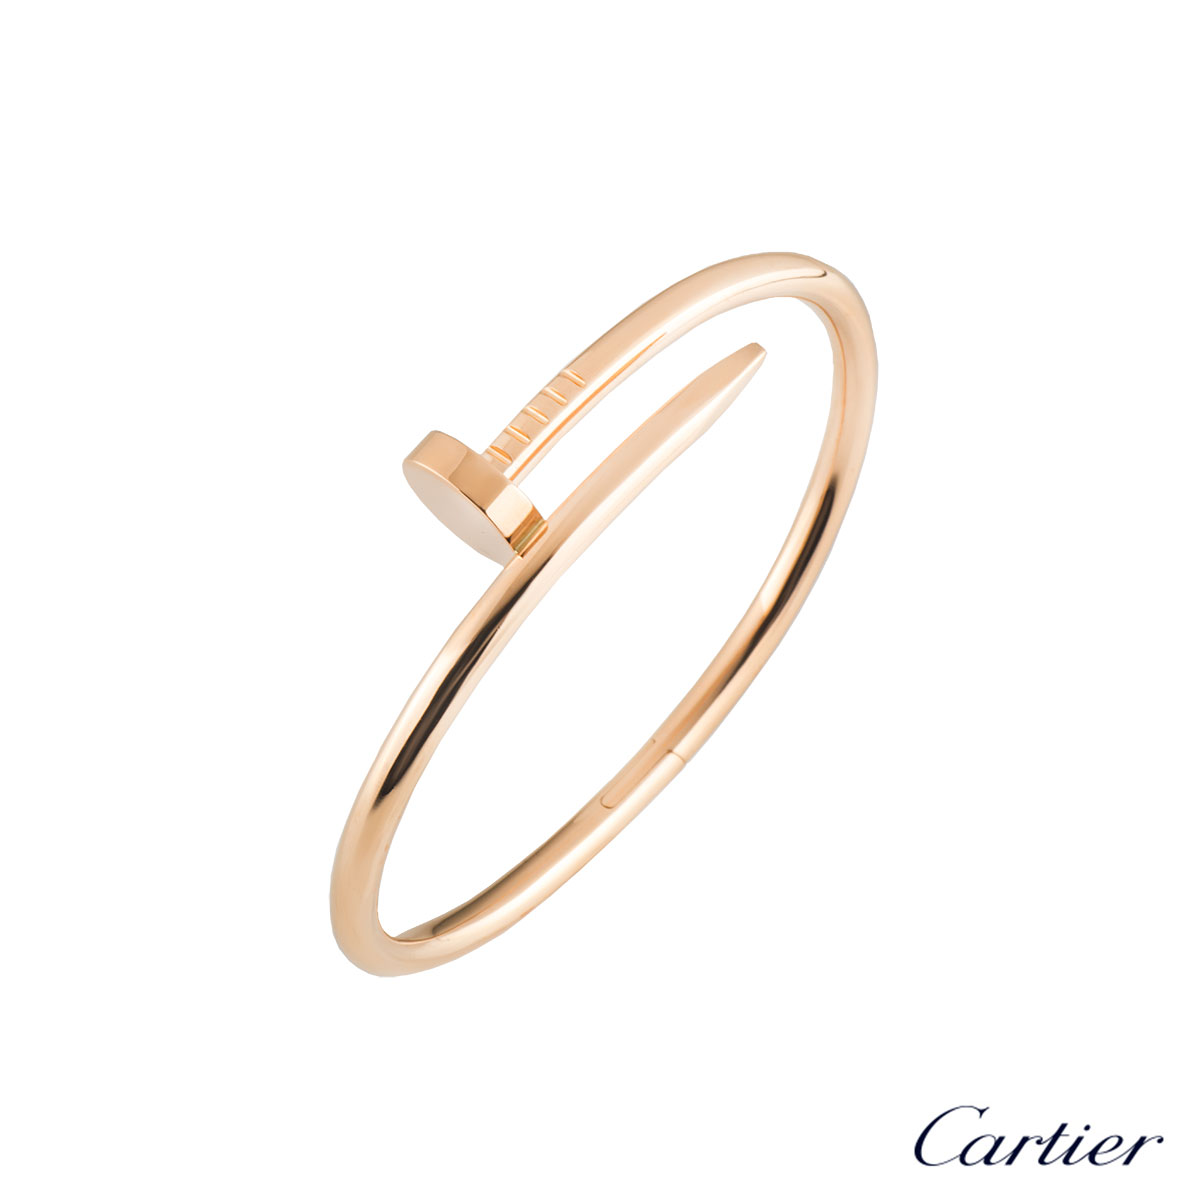 bracelet gold yellow juste un products cartier clou garderobe